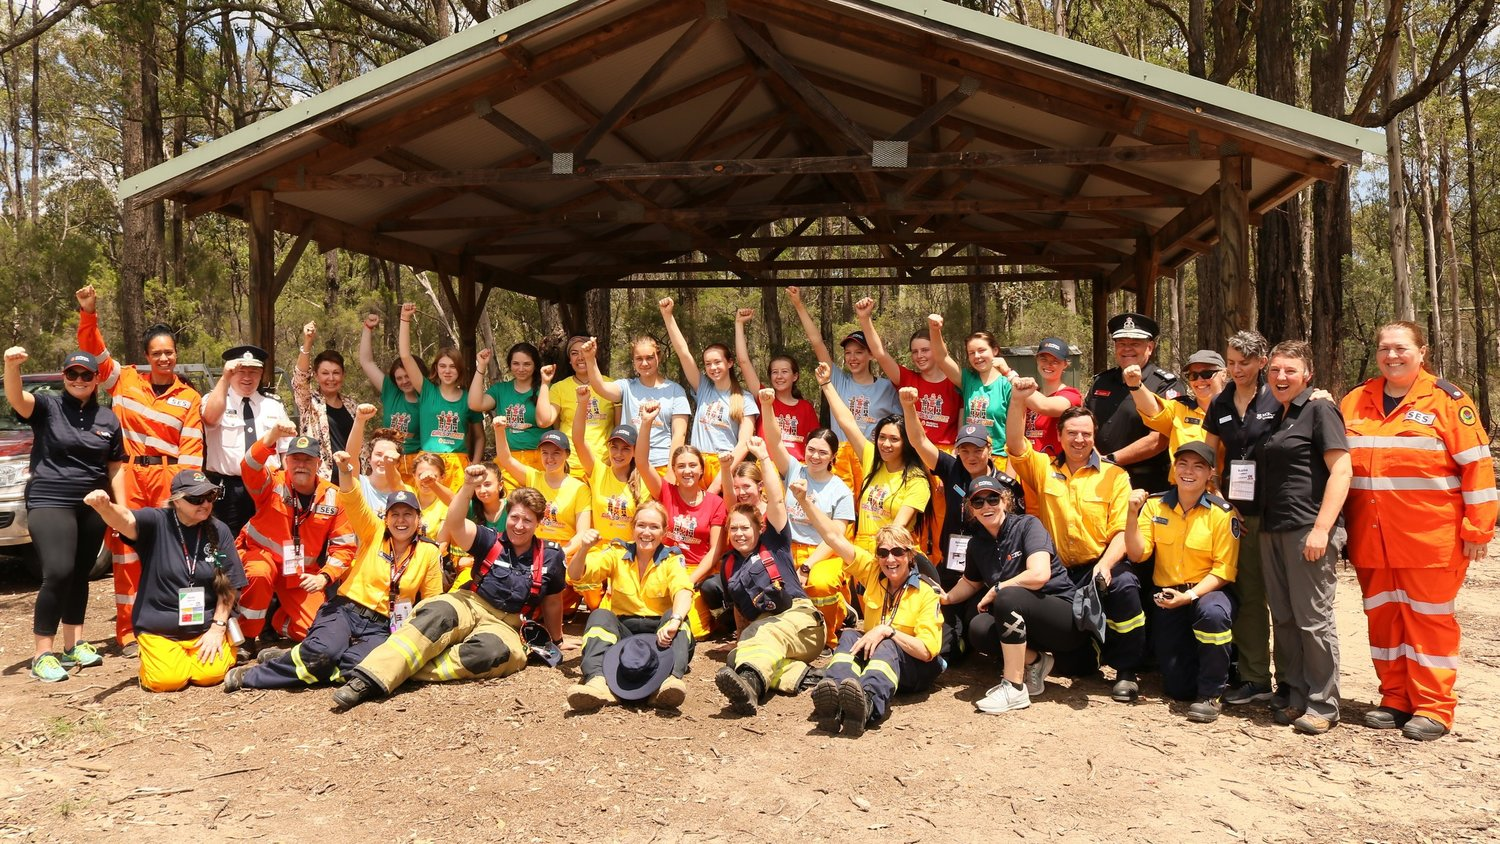 To promote and increase numbers of women and ethnically diverse people in Australian Fire Agencies